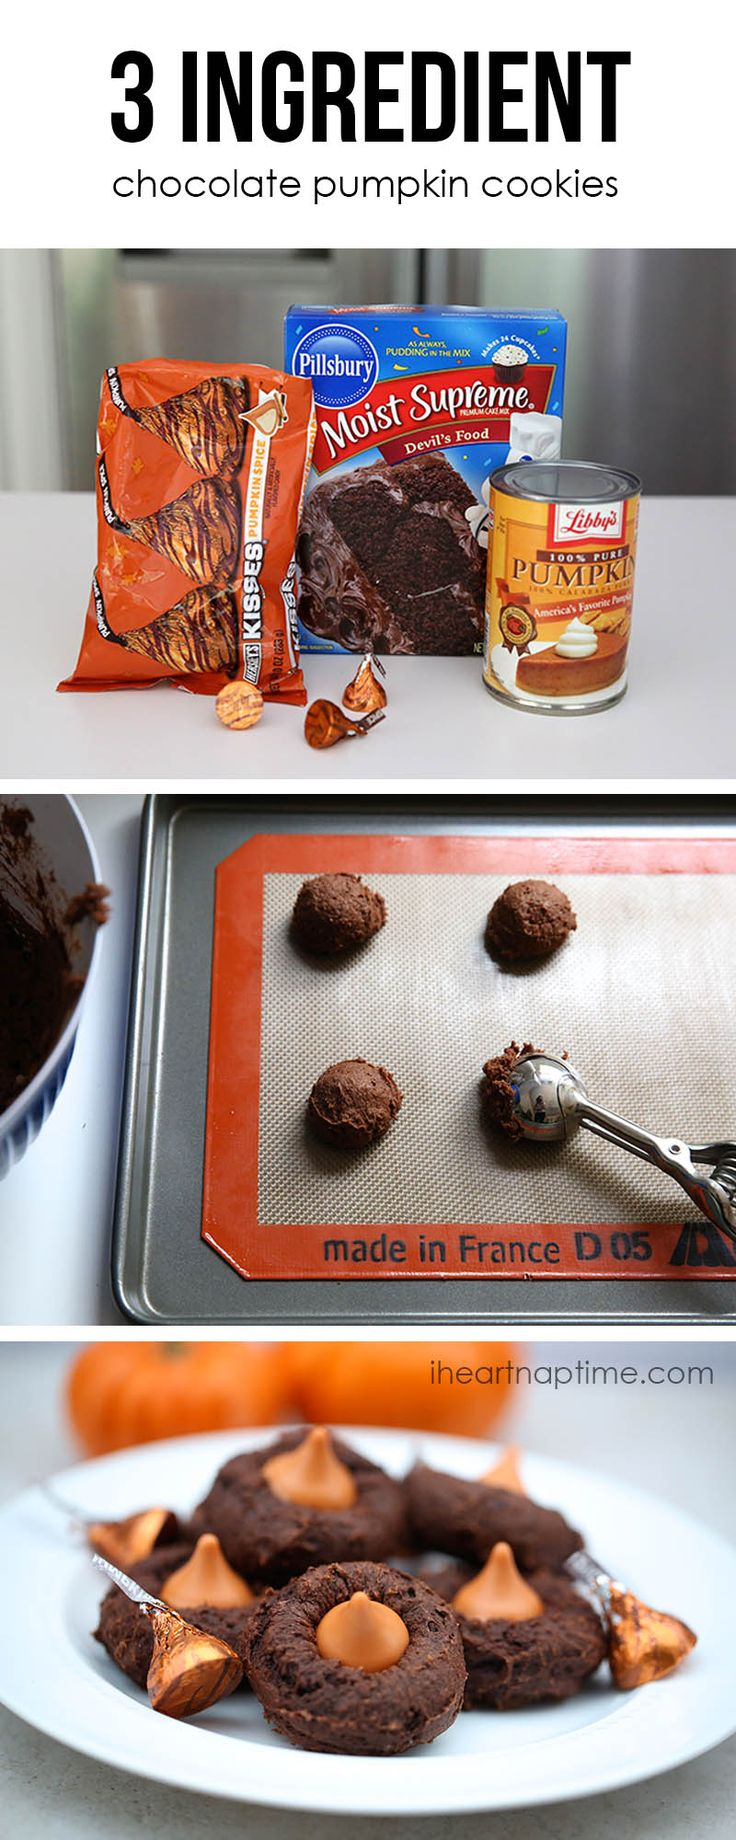 3 ingredient chocolate pumpkin cookies ...so easy and yummy!